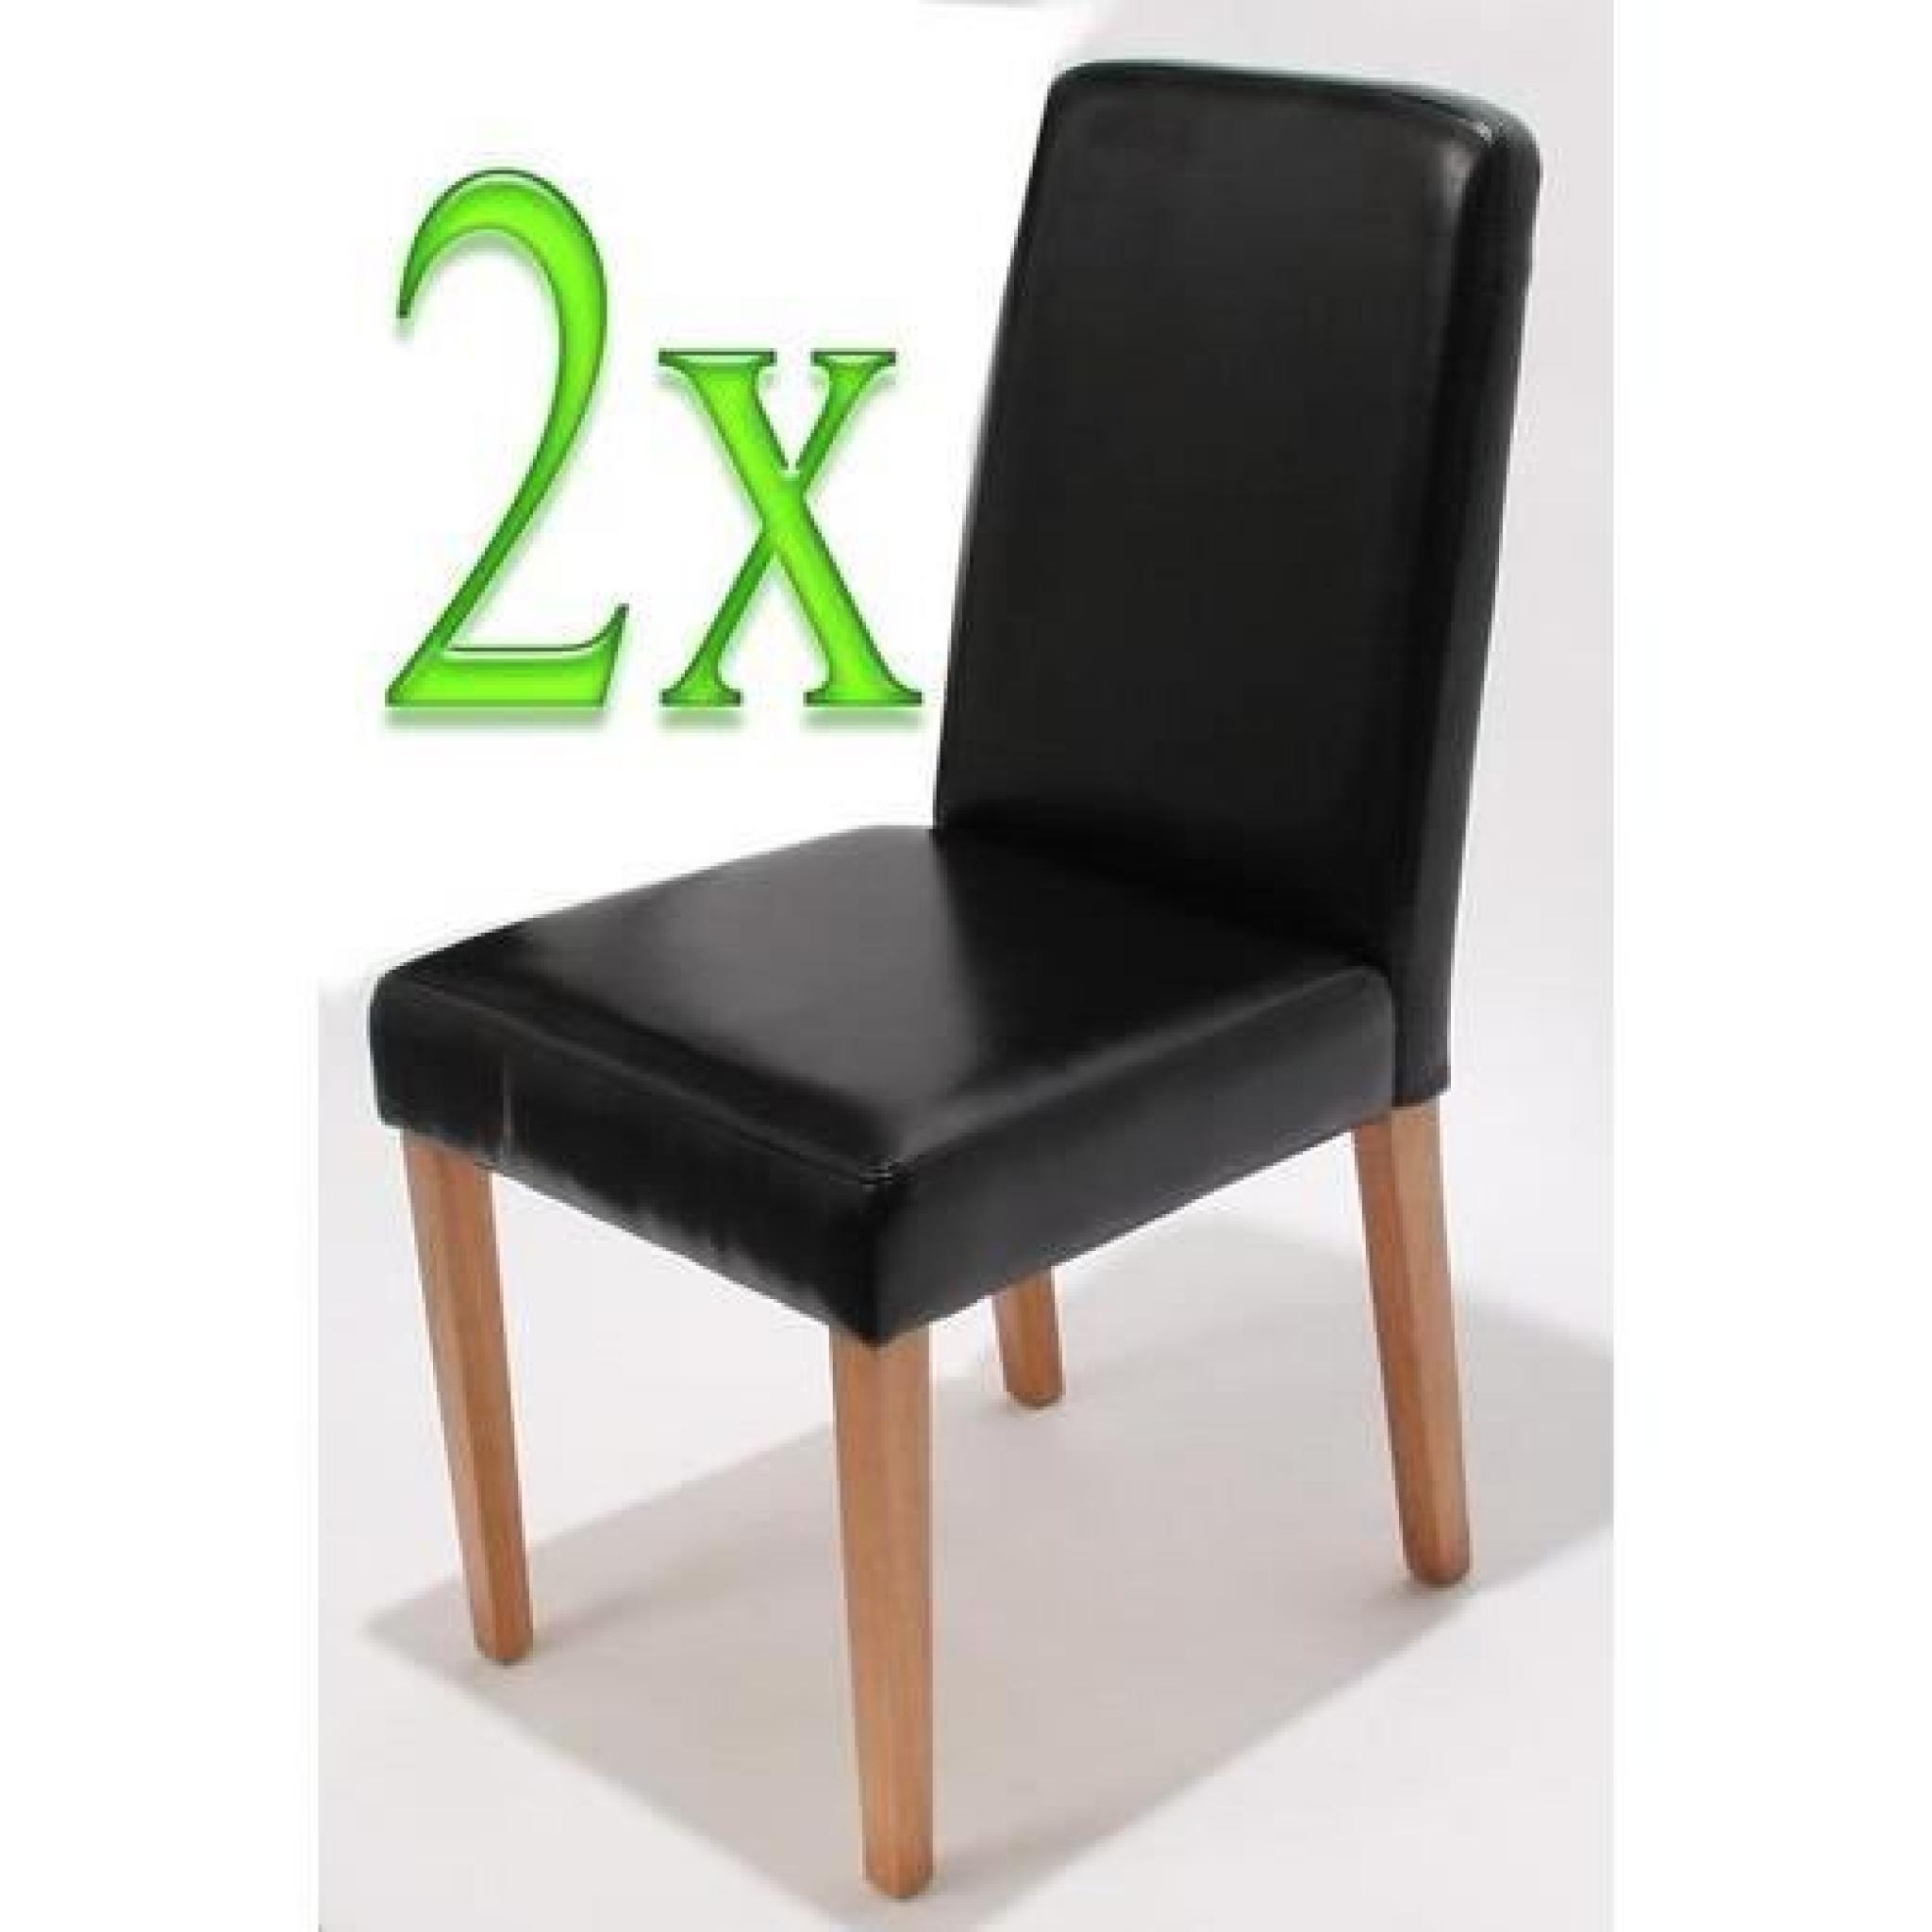 chaises de salle manger lot de 2 ancona cr me achat. Black Bedroom Furniture Sets. Home Design Ideas